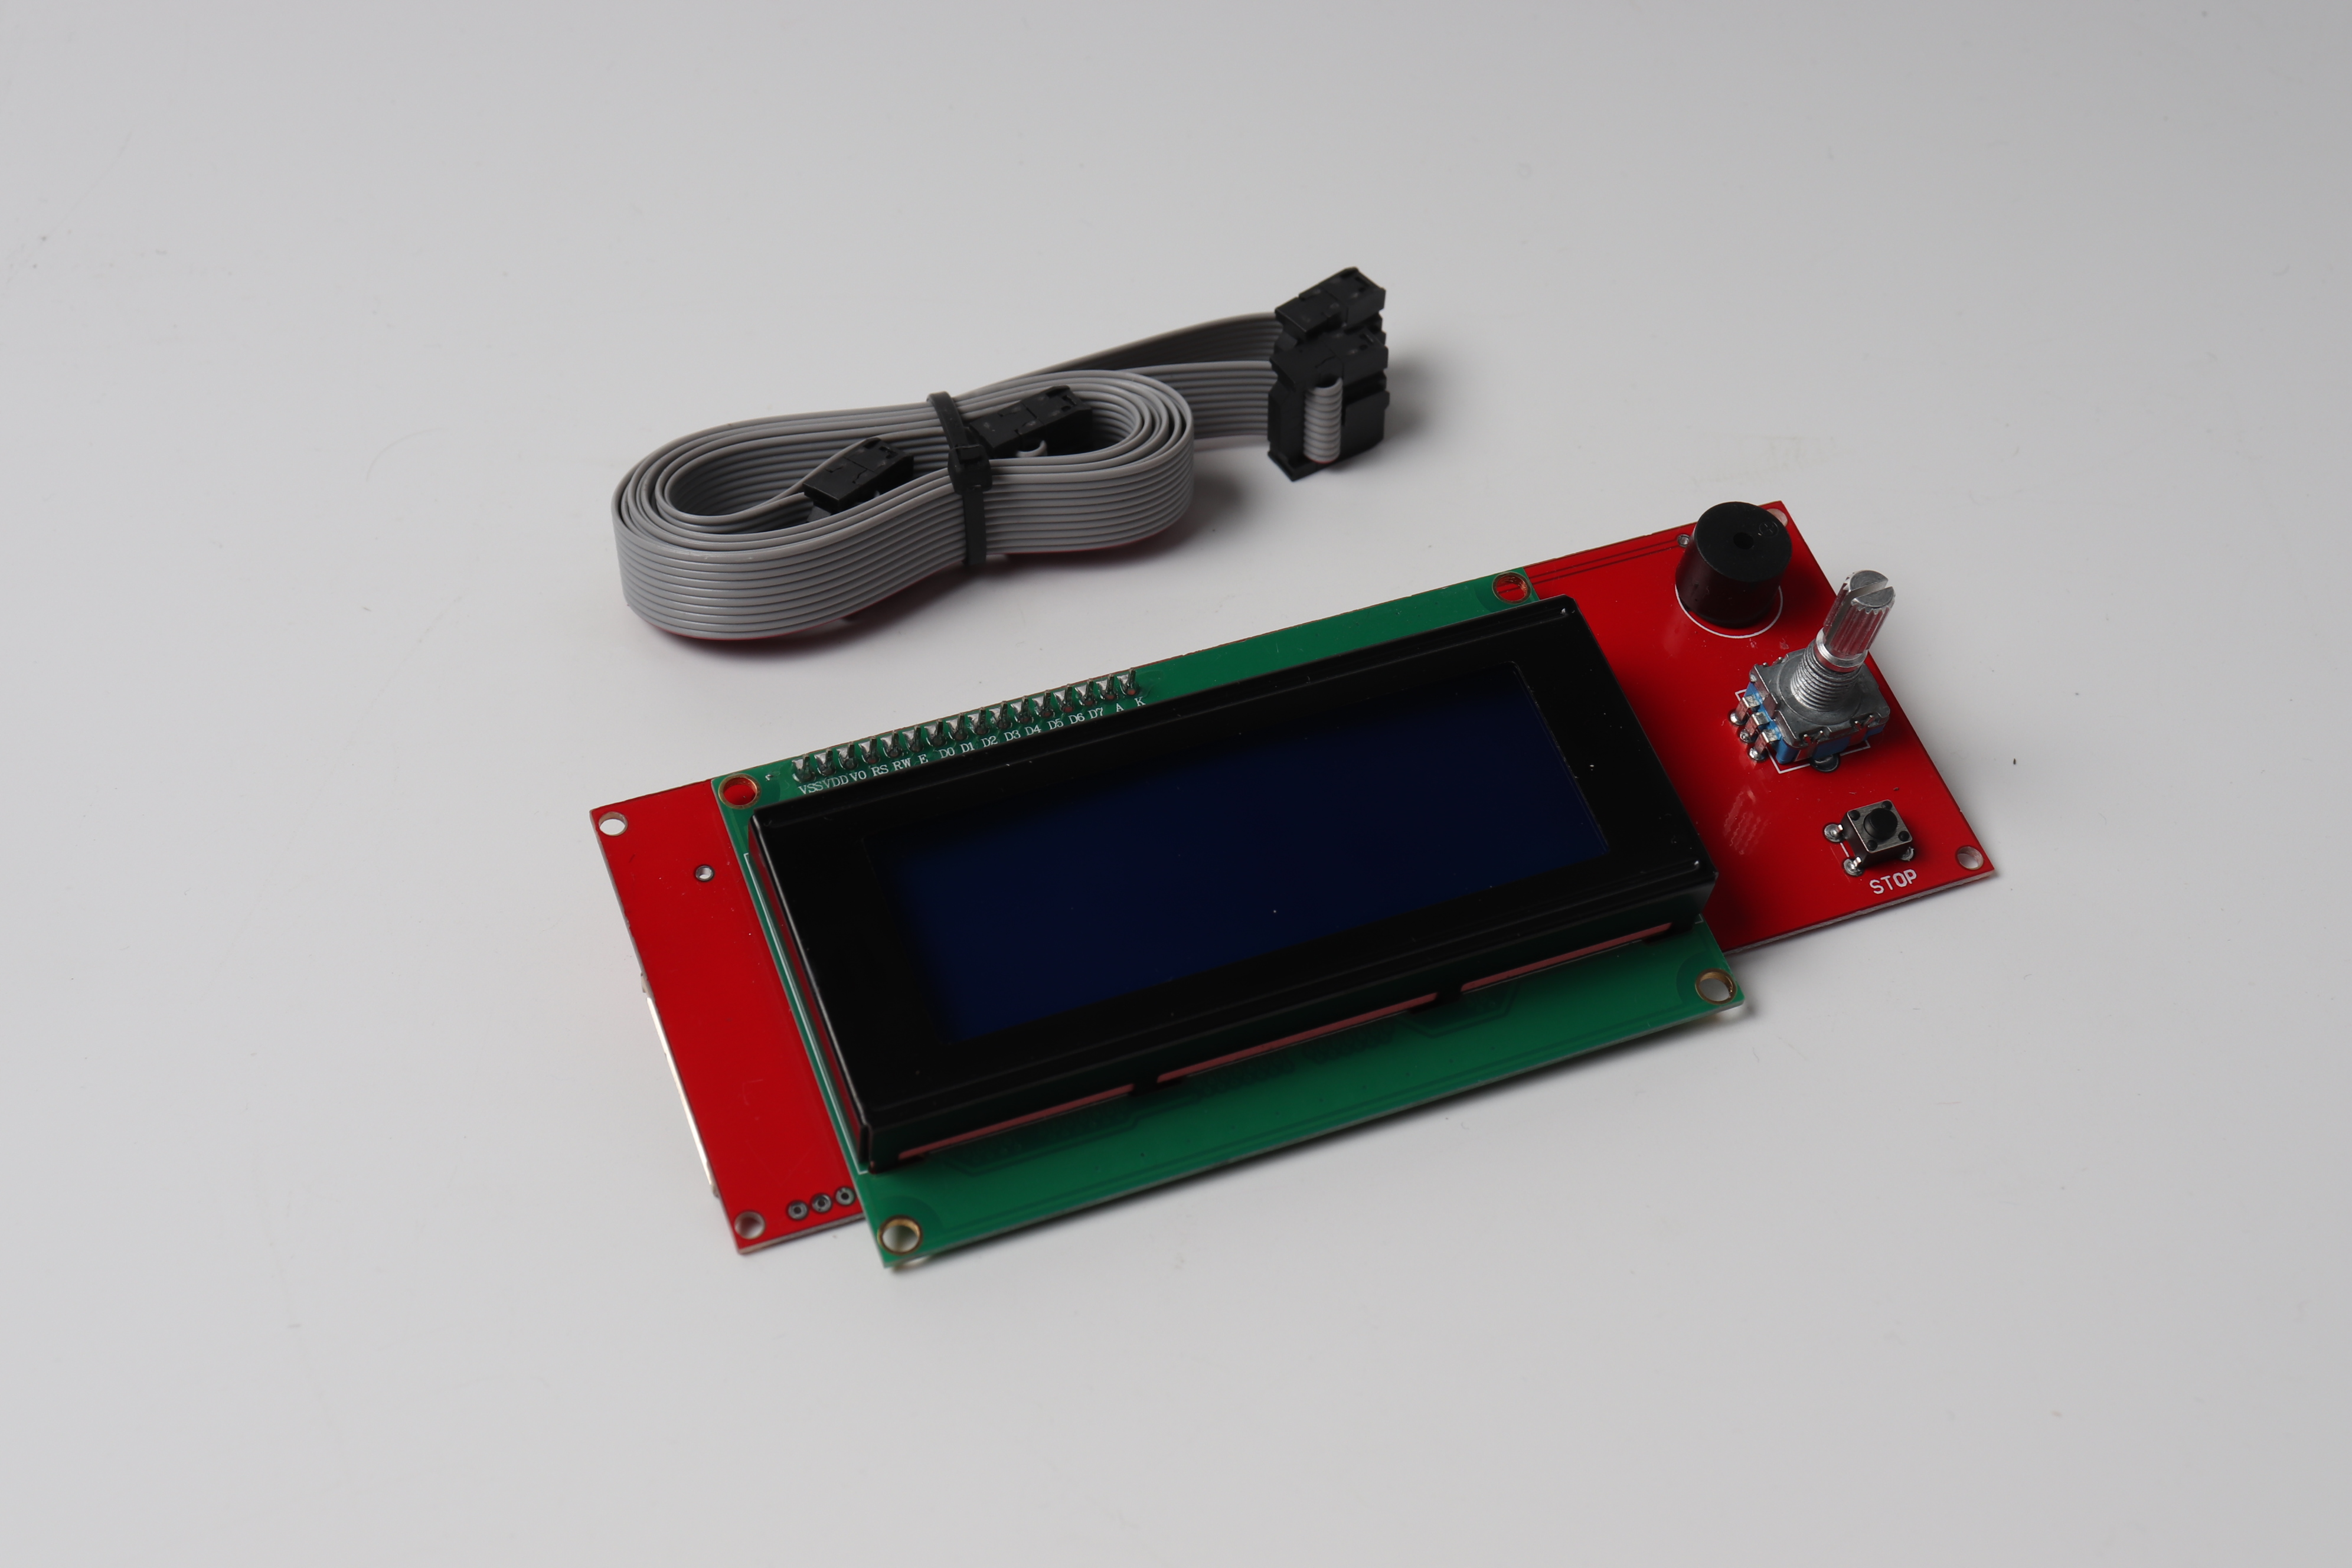 2004 LCD Display 3D Printer Controller With Adapter RAMPS 1.4 Mendel 20 characters x 4 lines For Pru